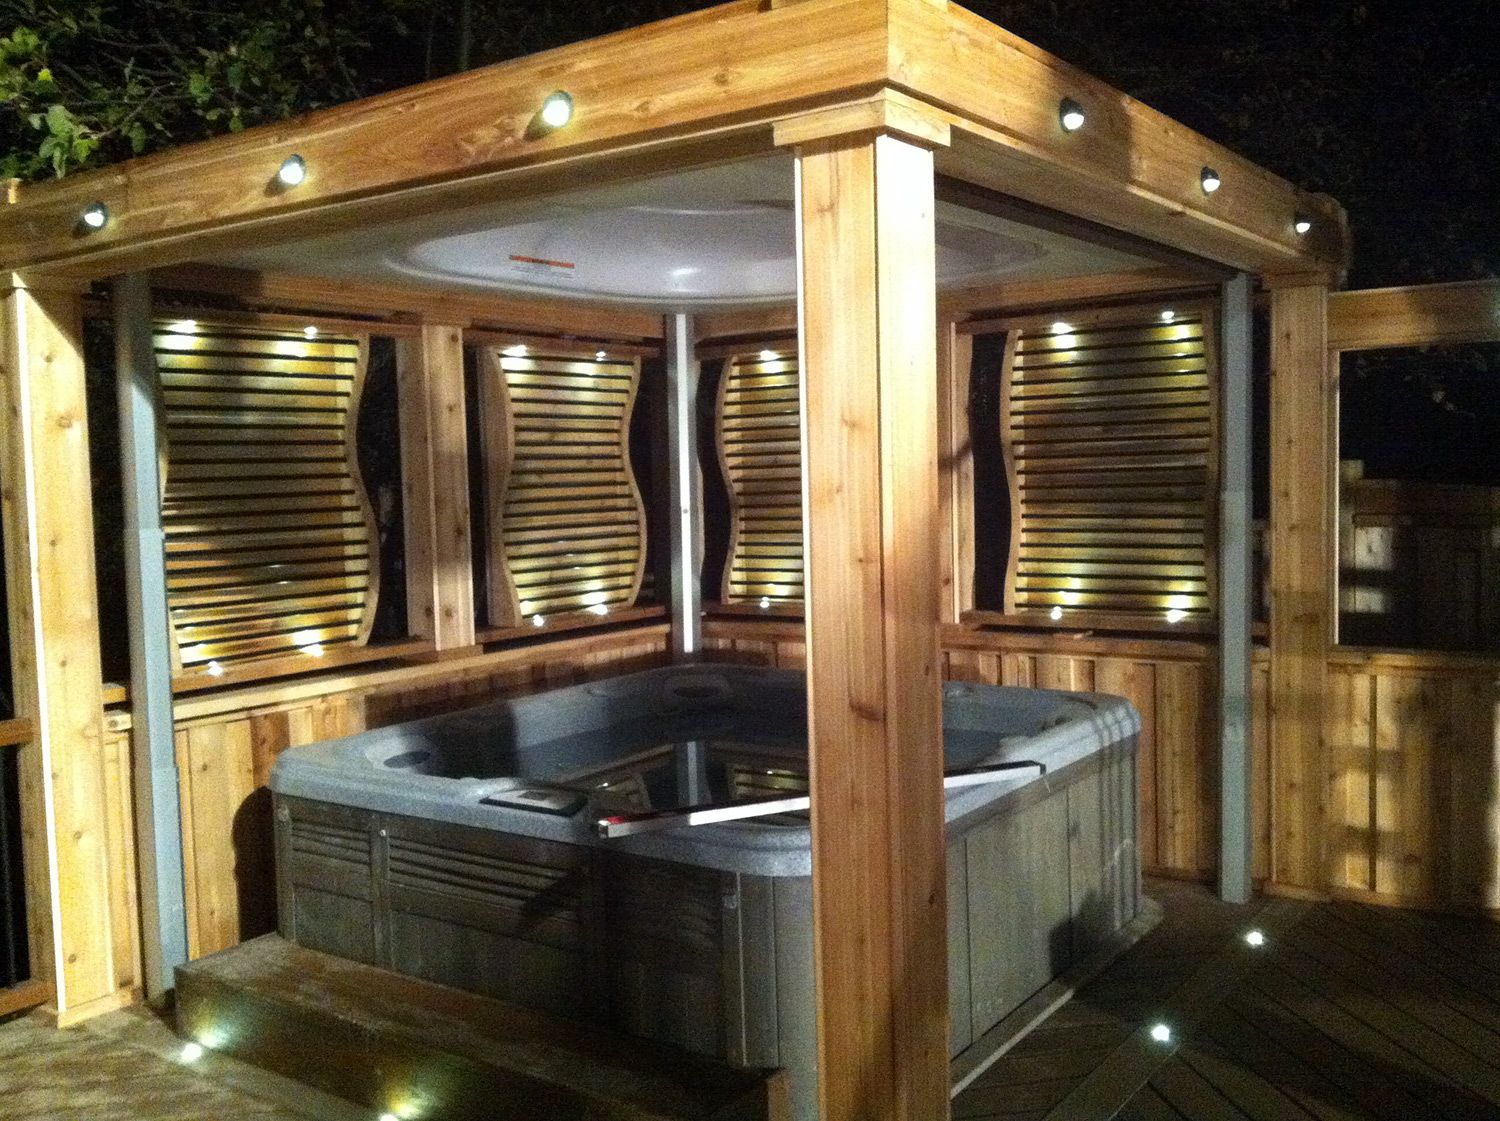 Enclosed Hot Tub Area Complete With Lighting, Privacy Screens And Curtains.  The Roof Is Also A Retractable Cover, That Lowers Onto The Tub When Not In  Use.